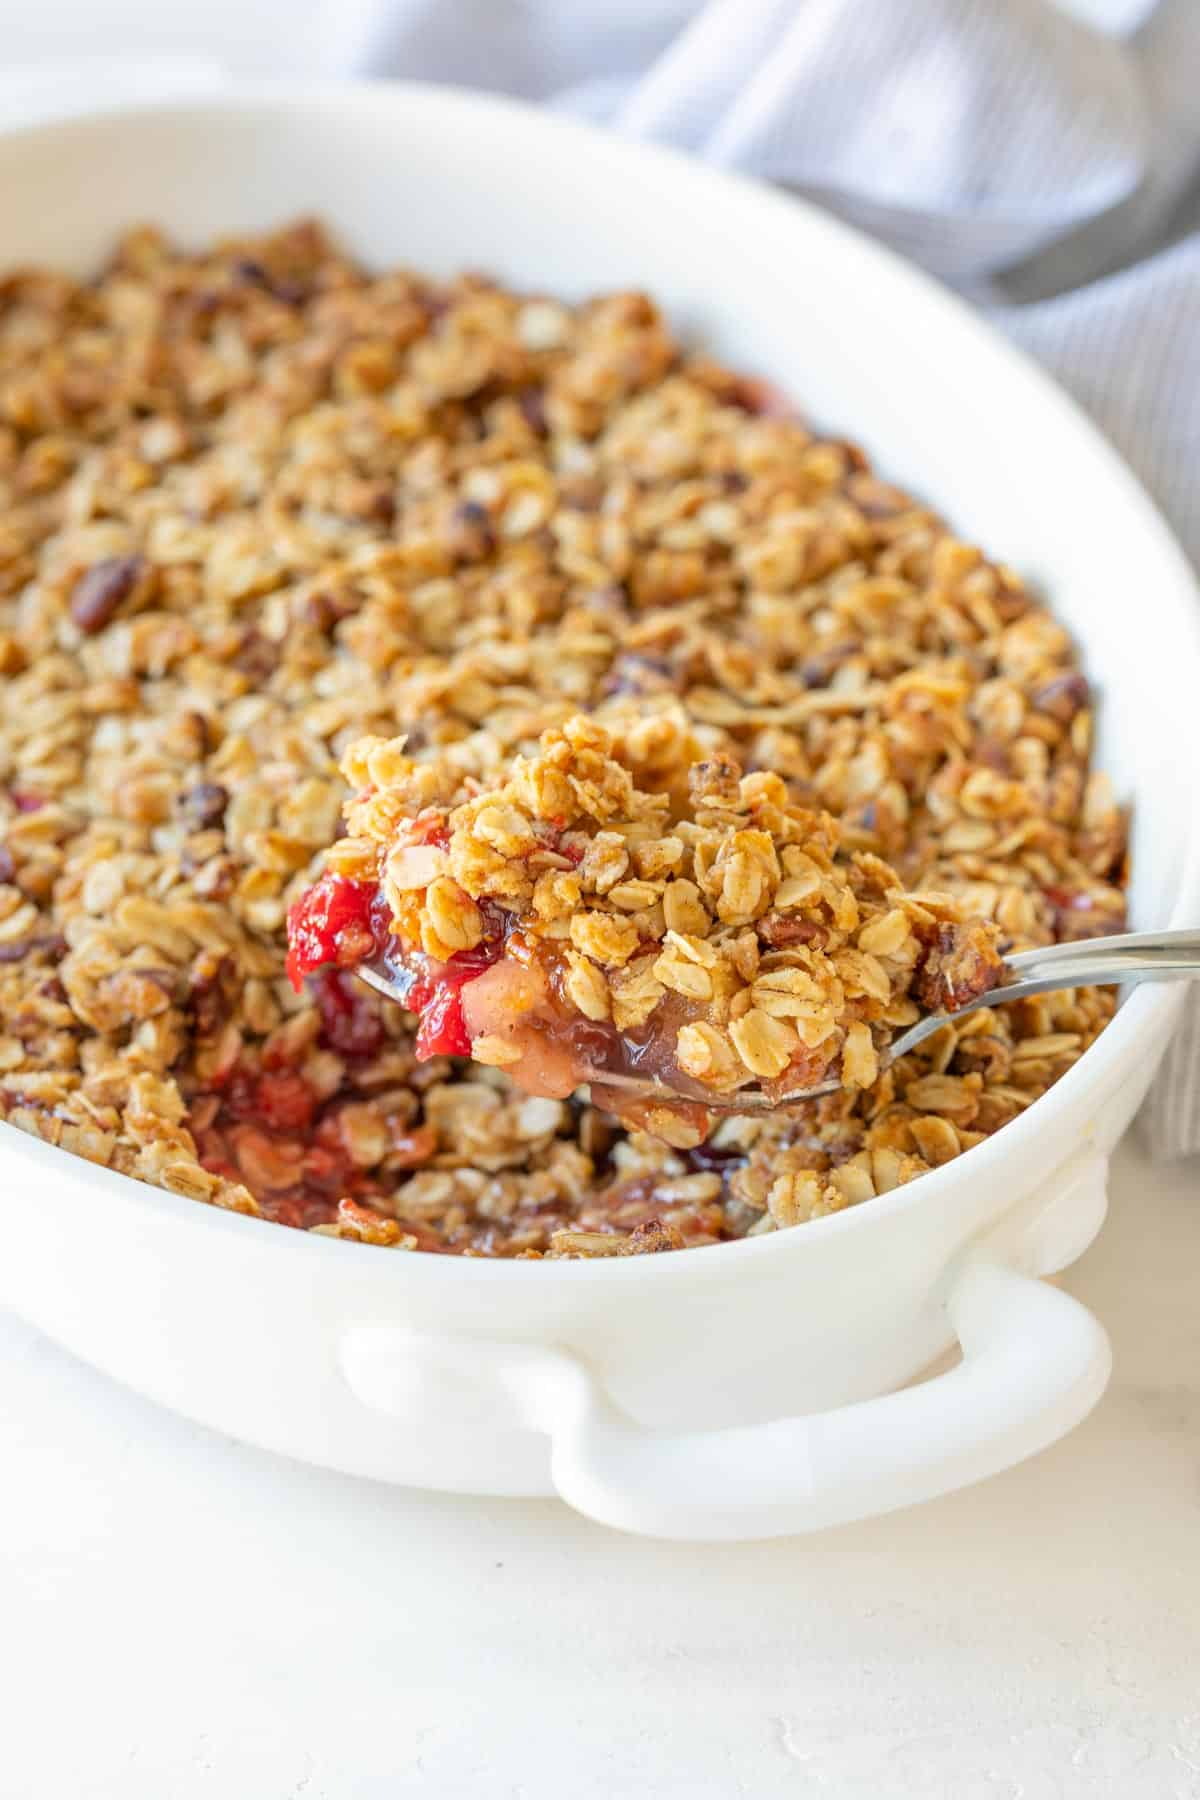 A closeup of a spoon removing cranberry apple crisp from a white baking dish.